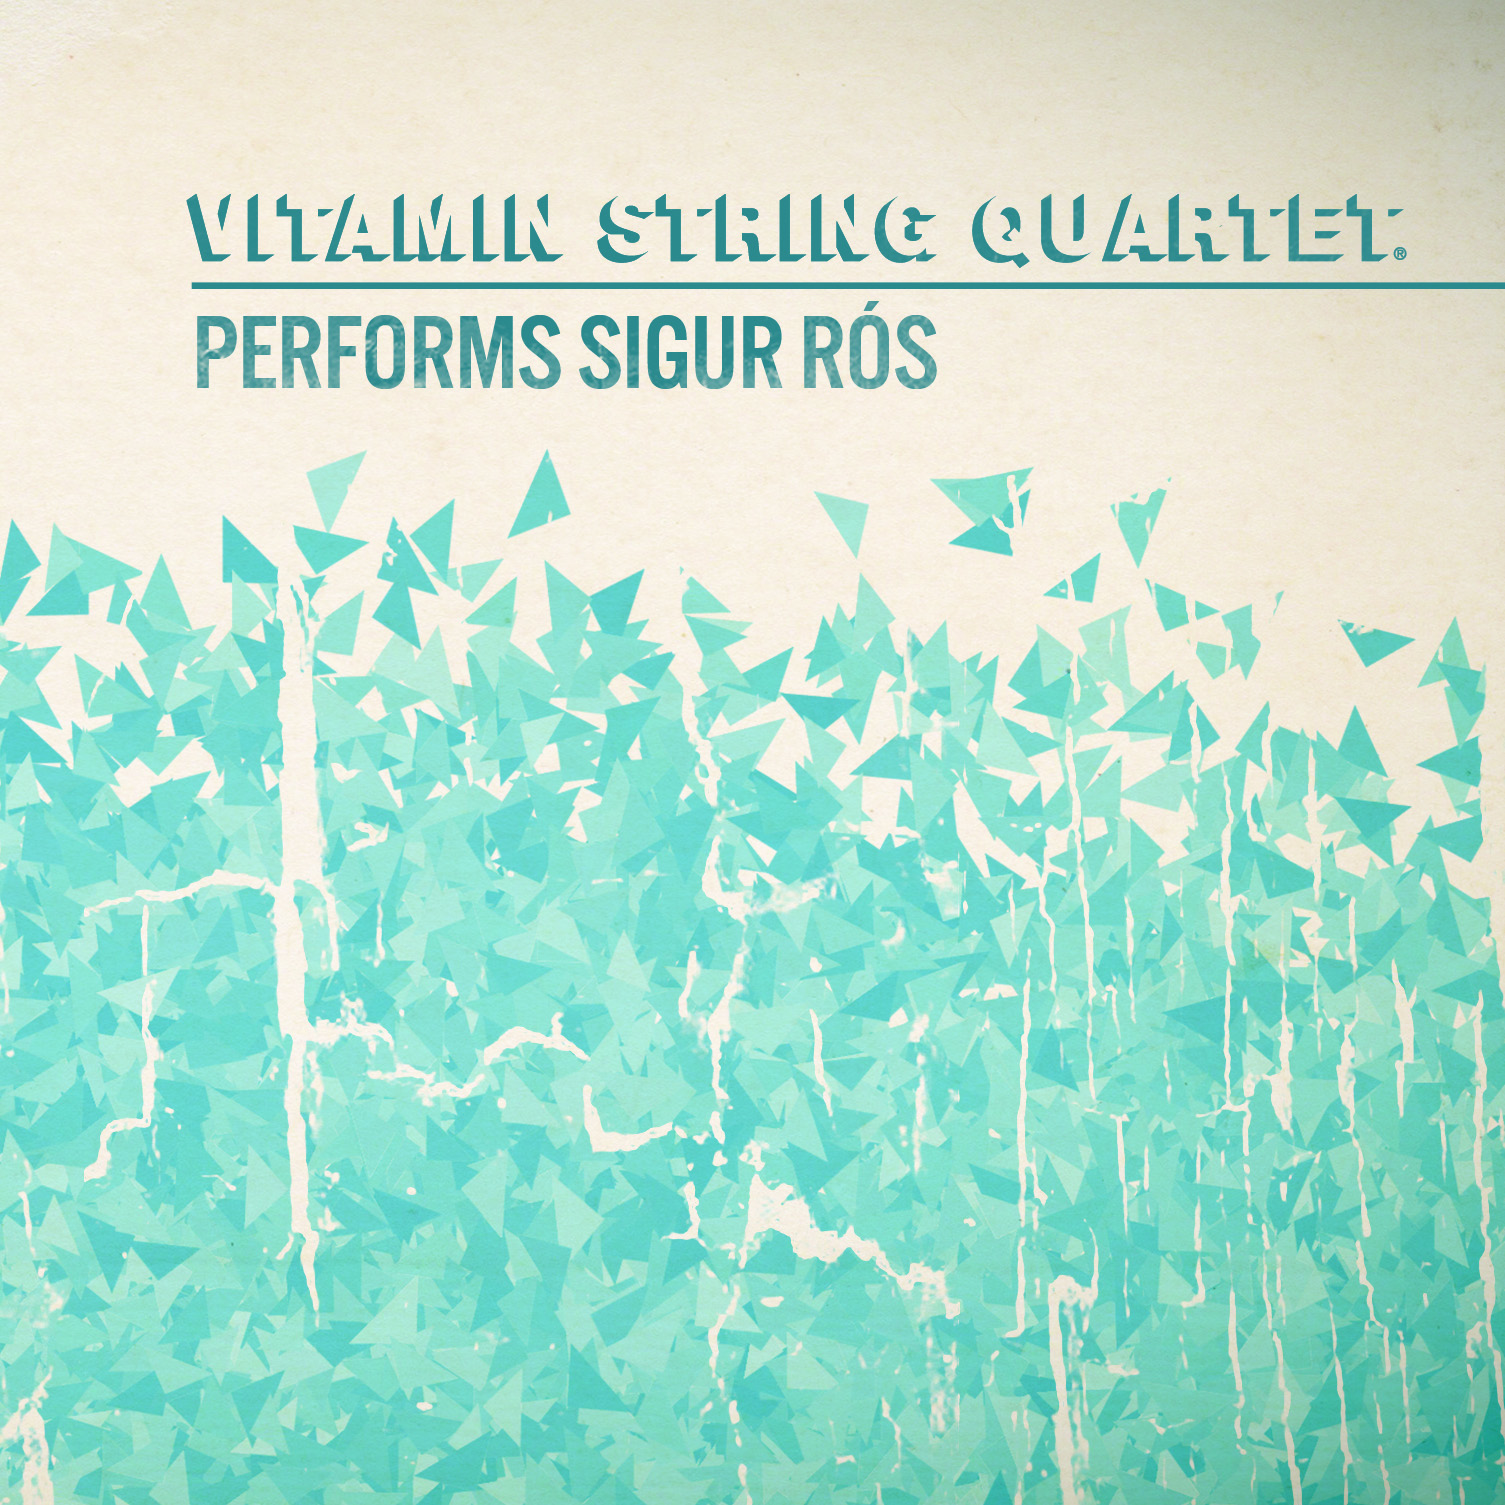 Vitamin String Quartet - Vitamin String Quartet Performs Sigur Ros